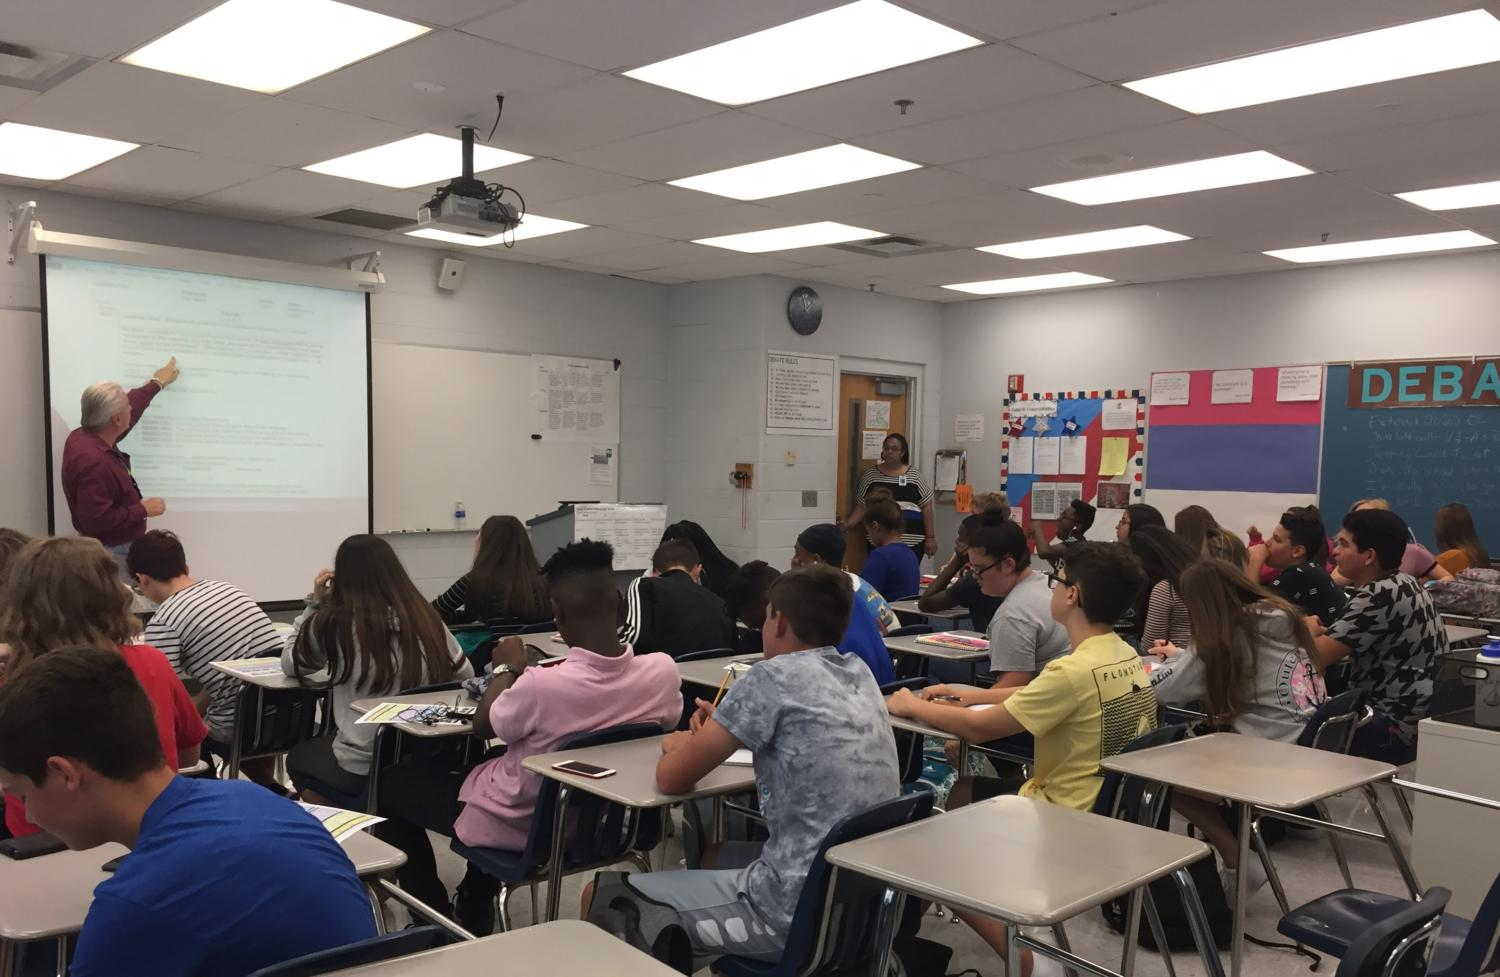 In room 7-221 on Wednesday August 23, debate and speech teacher Dan Smith leads his students on a debate topic. Debate class allows students to broaden their understandings on other opinions.